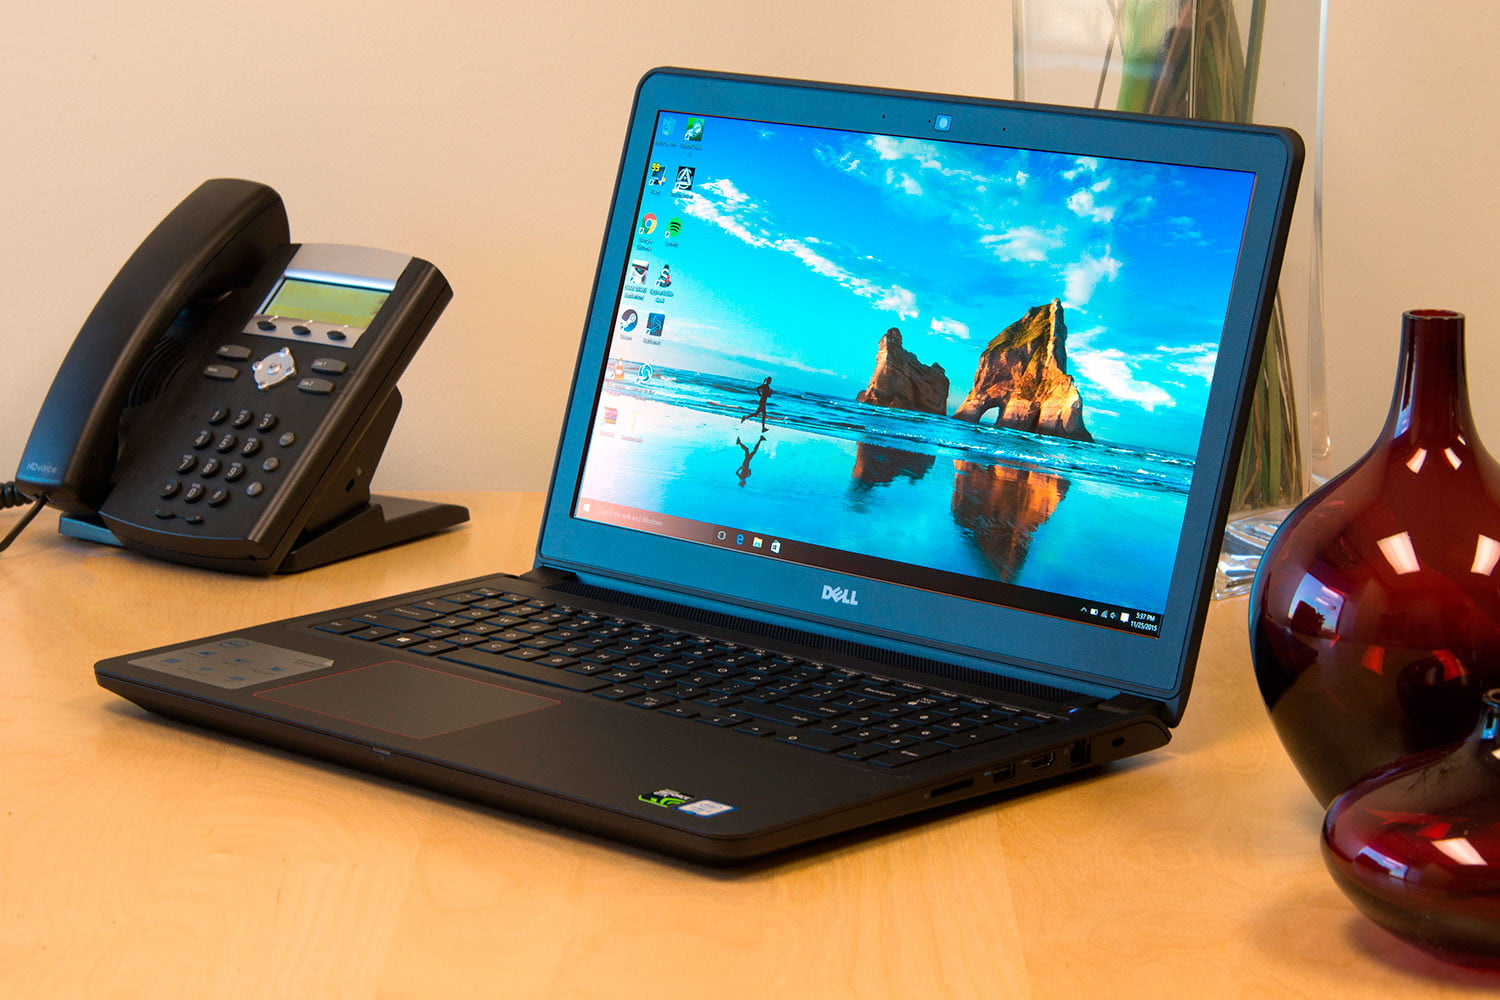 Dell Inspiron 15 7000 (Late 2015) Review | Digital Trends